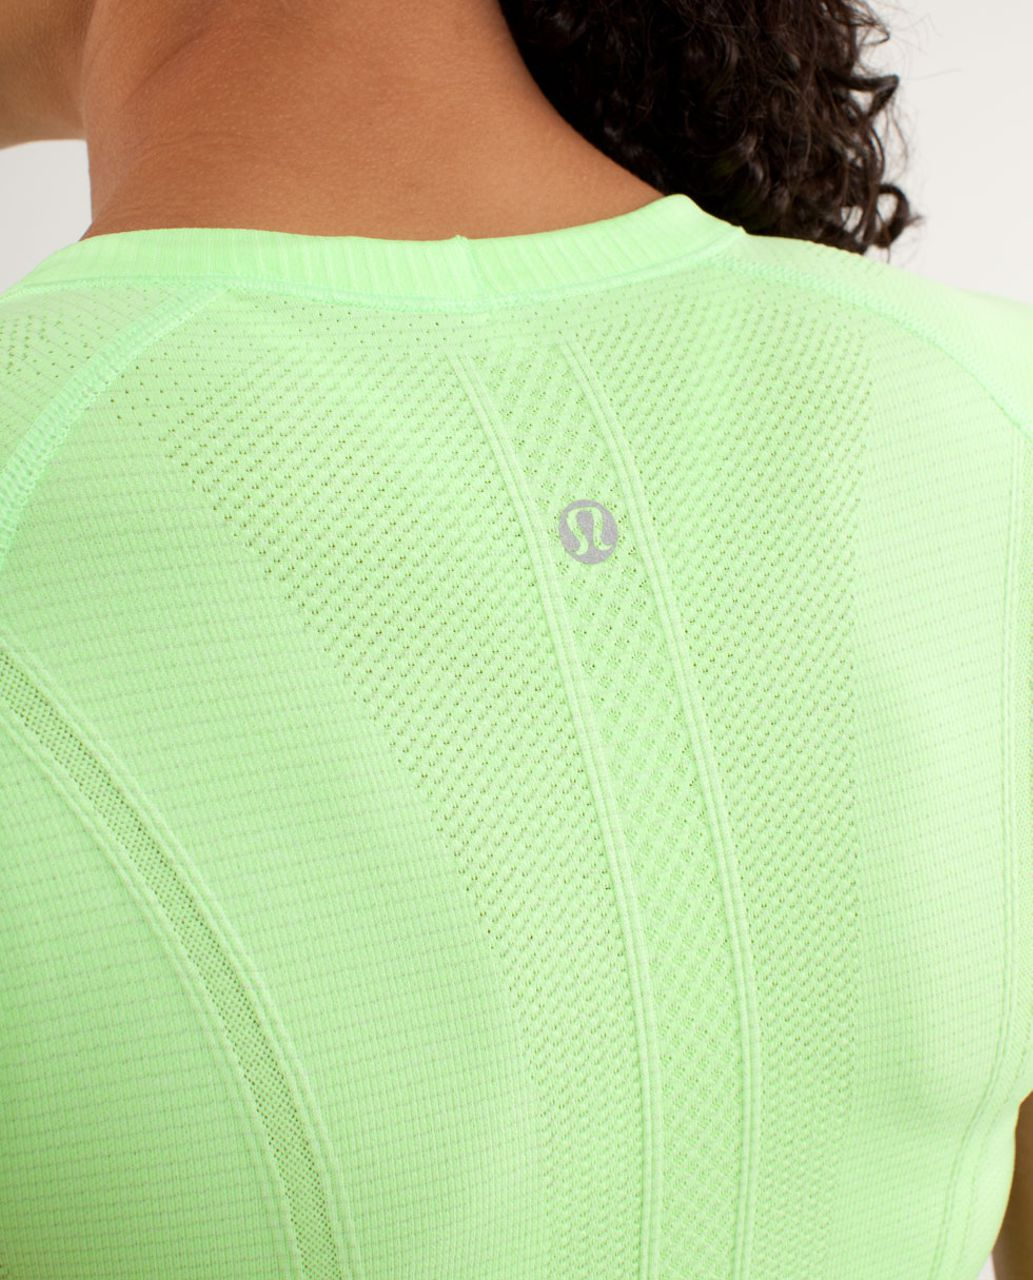 Lululemon Run:  Swiftly Tech Short Sleeve - Zippy Green